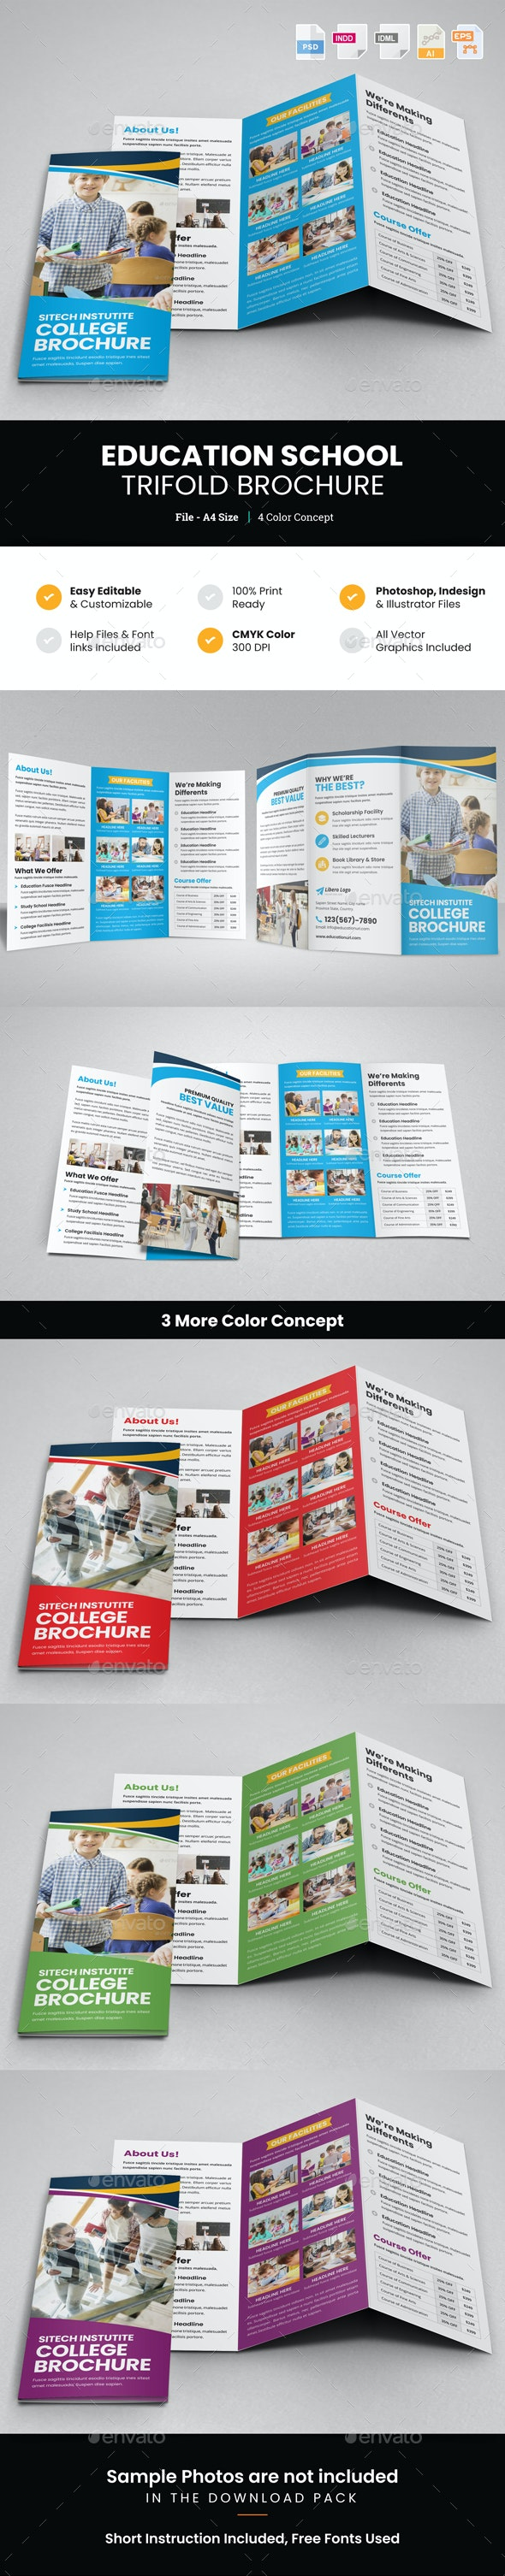 Education School Trifold Brochure v2 - Corporate Brochures